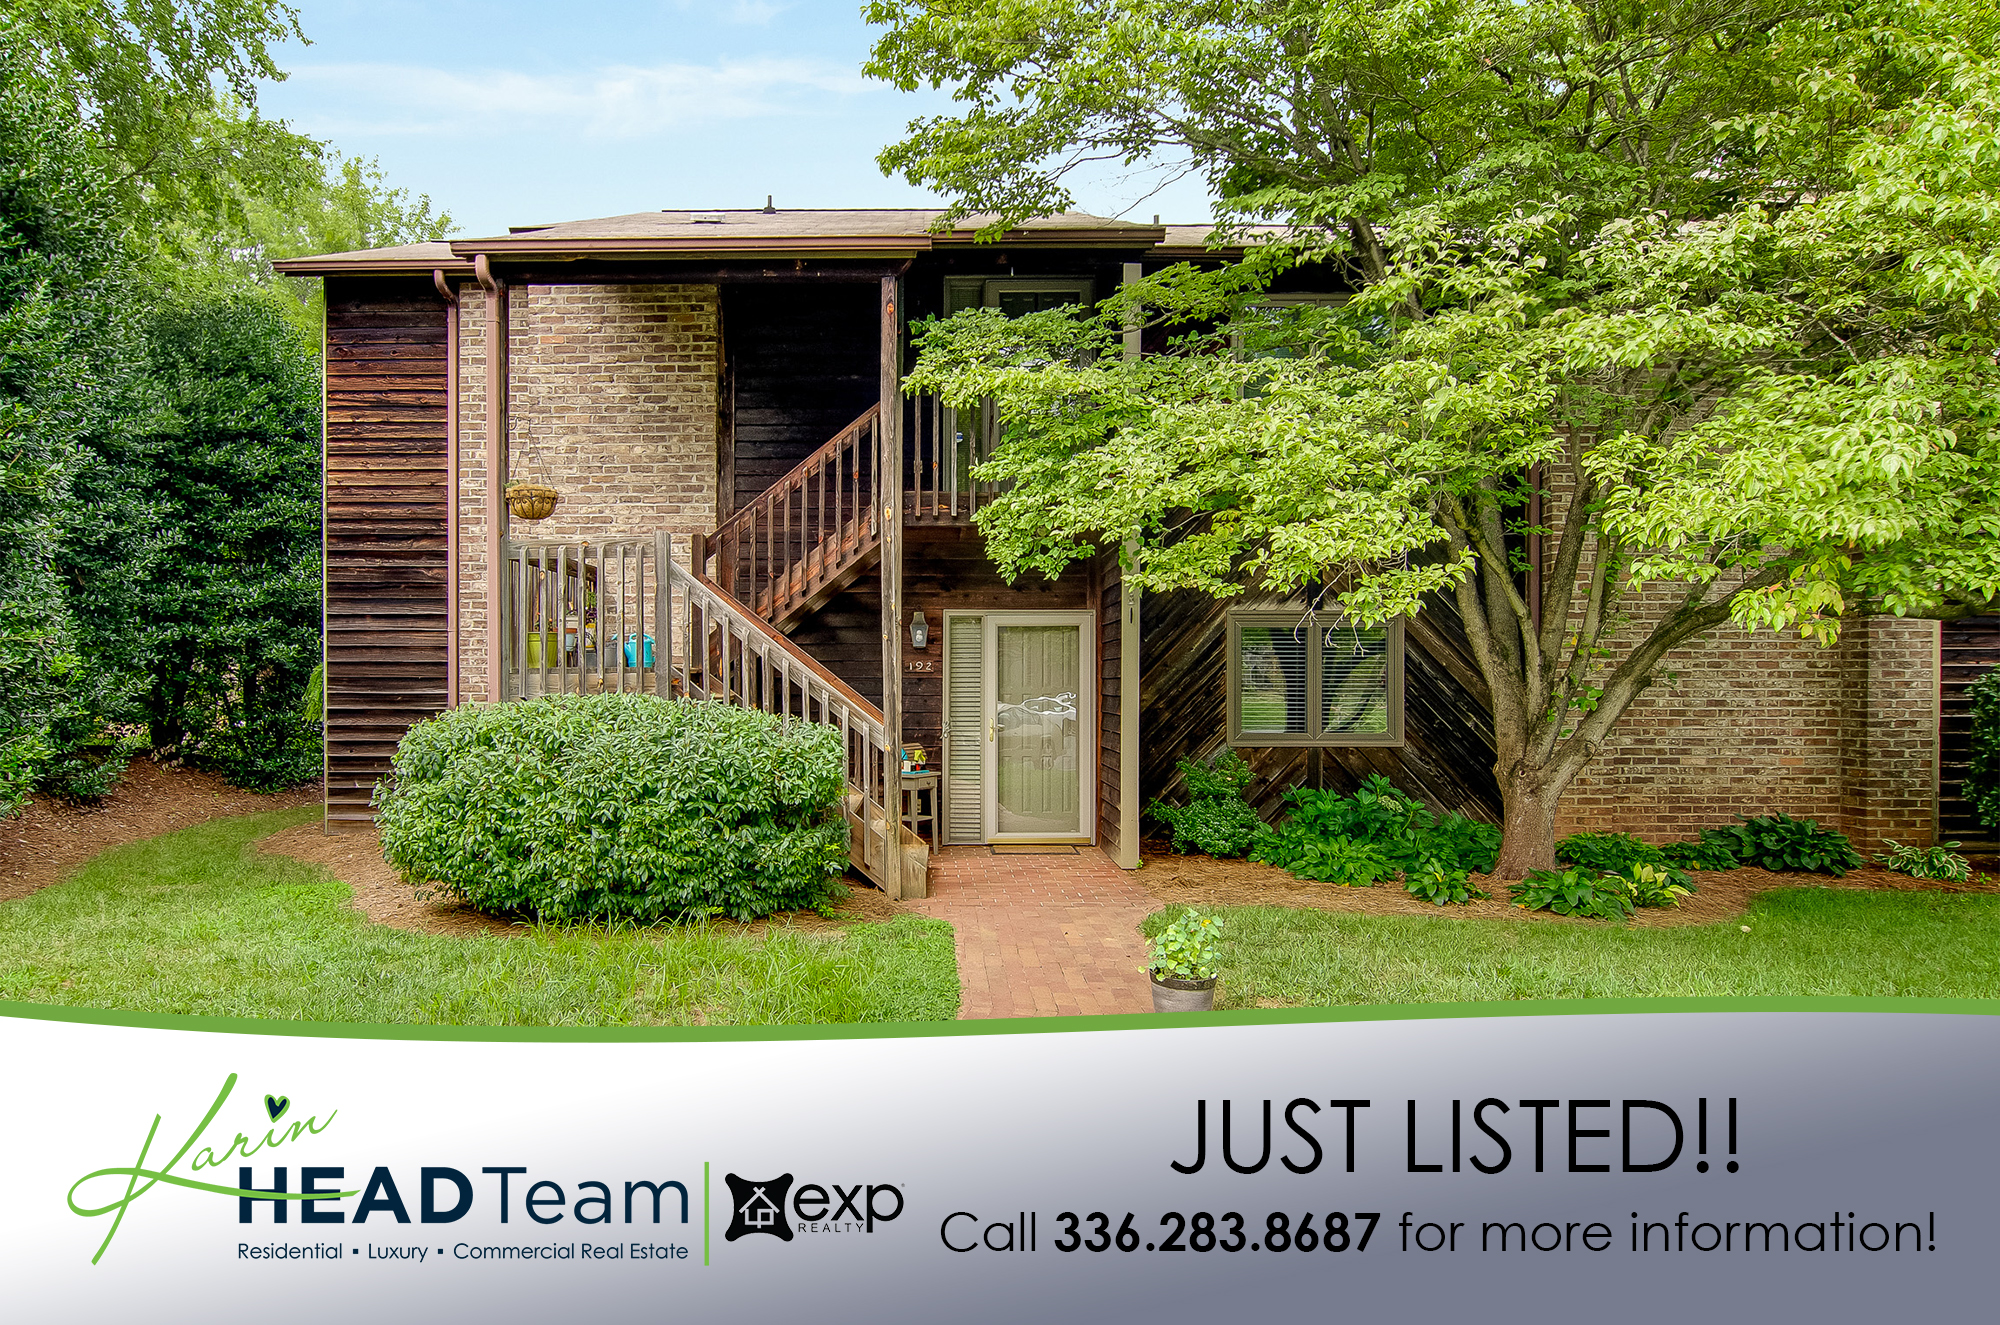 192 Kinloch_Just Listed-EXP.jpg